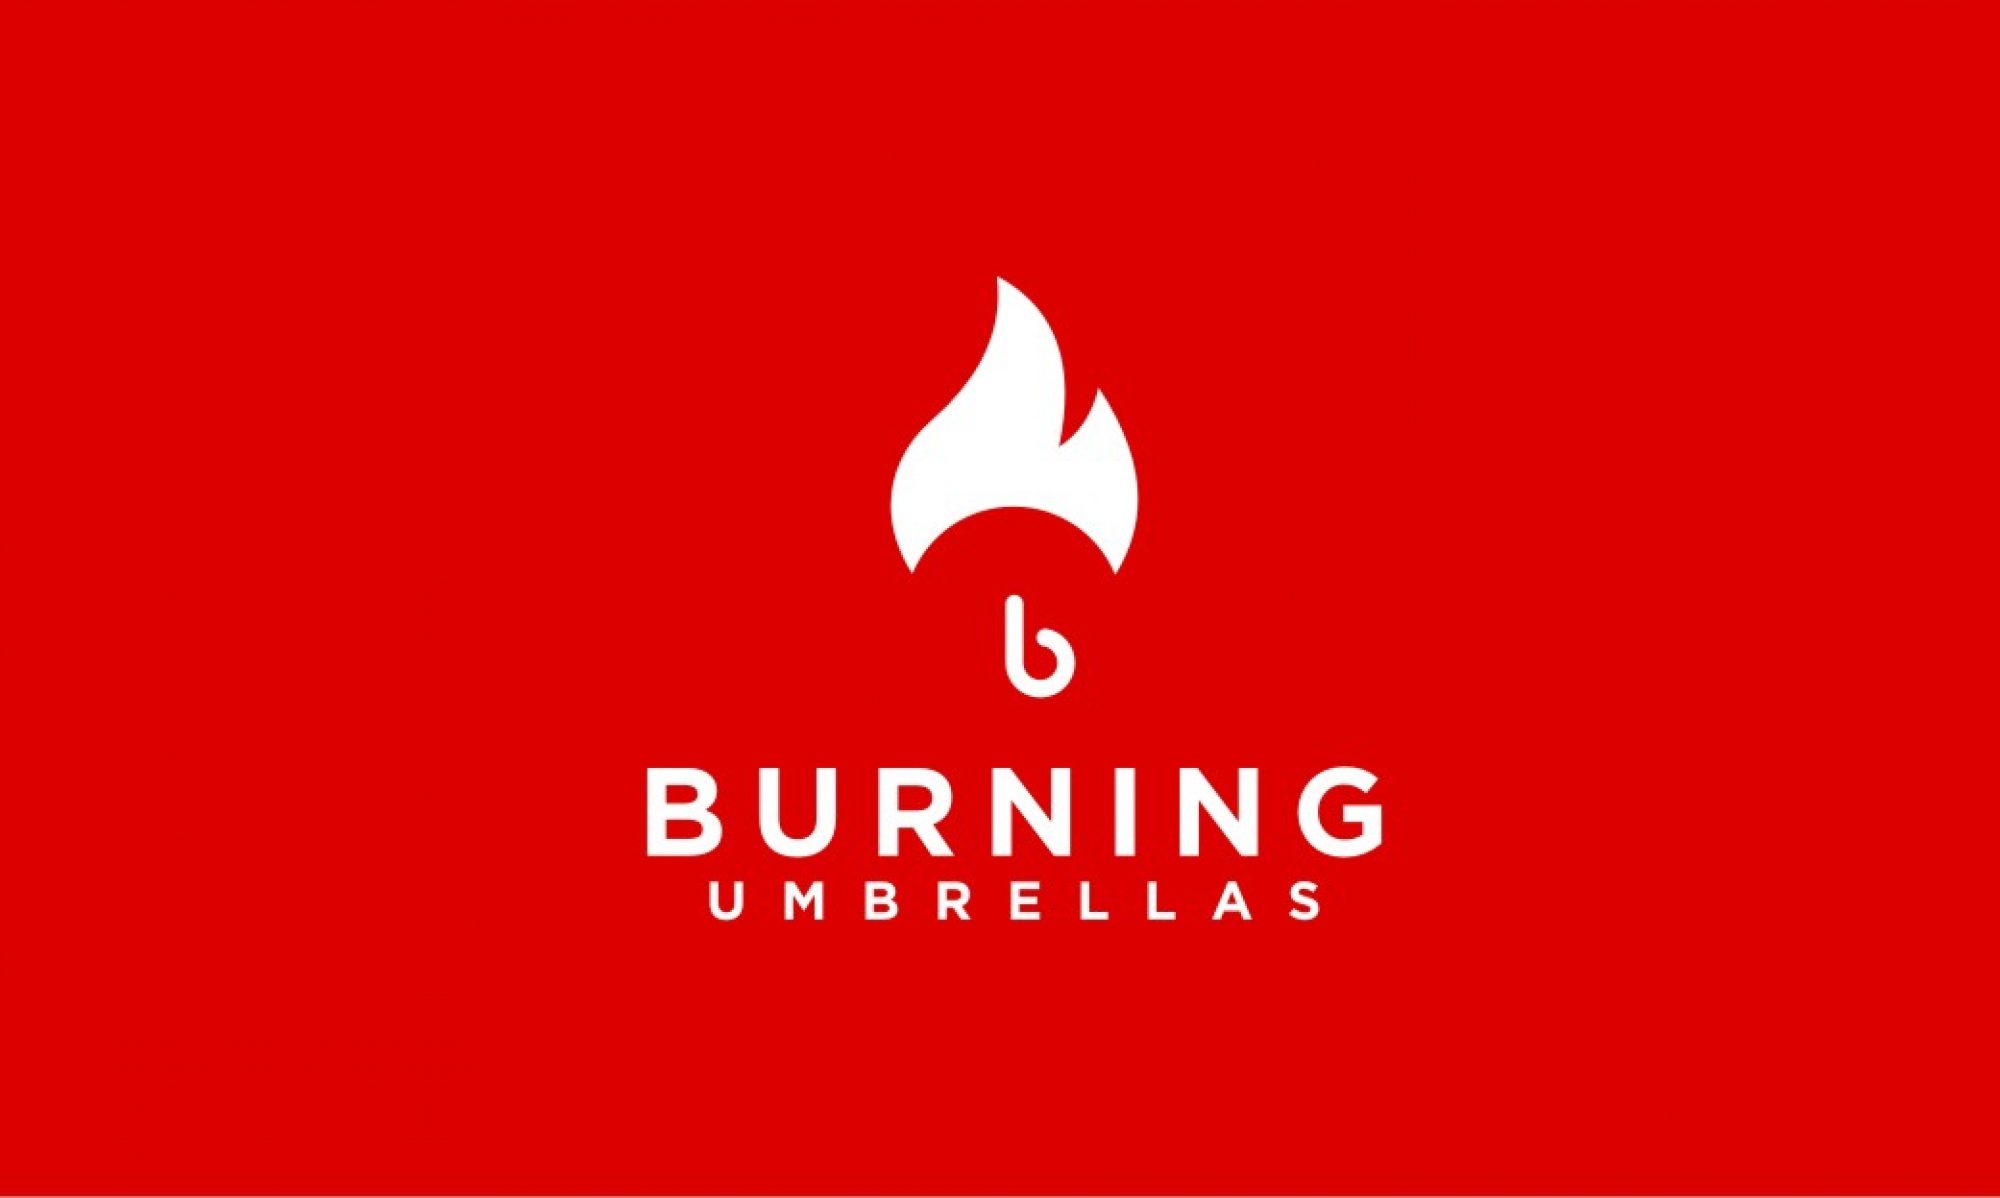 Burning Umbrellas